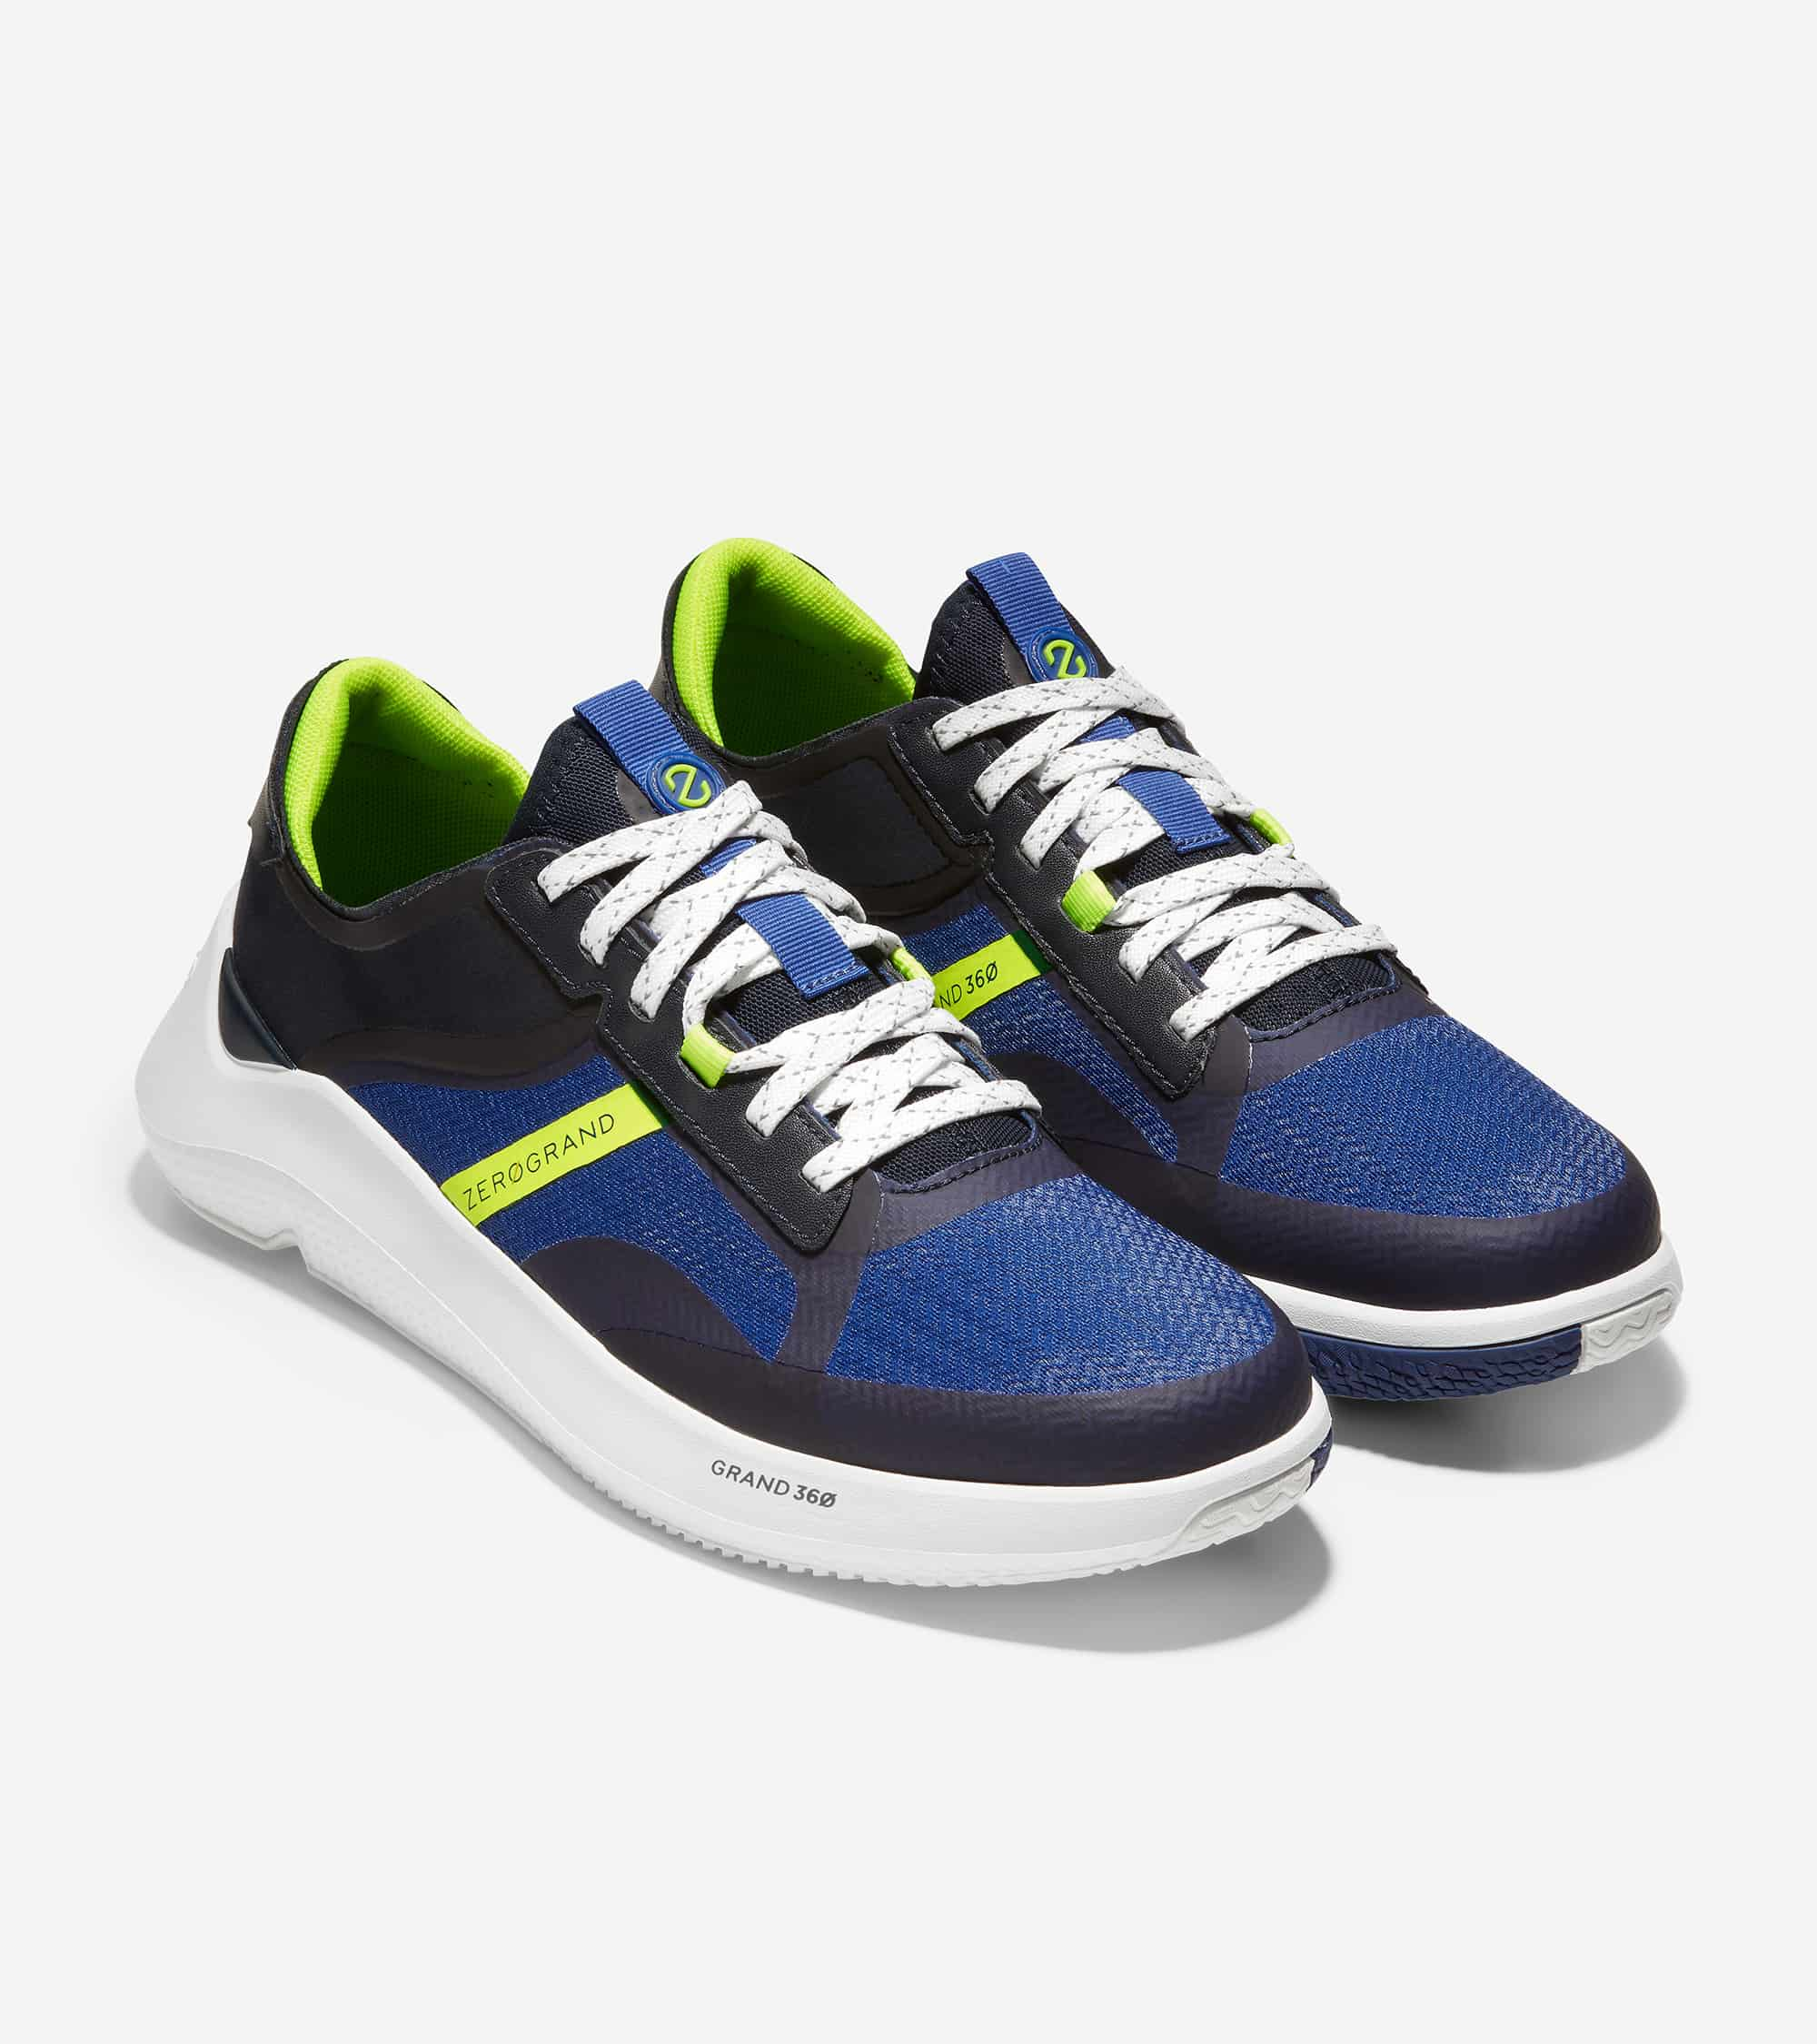 Cole Haan ZERØGRAND Winner Tennis Sneaker Navy Ink/Pacific Blue/Safety Yellow/Optic White